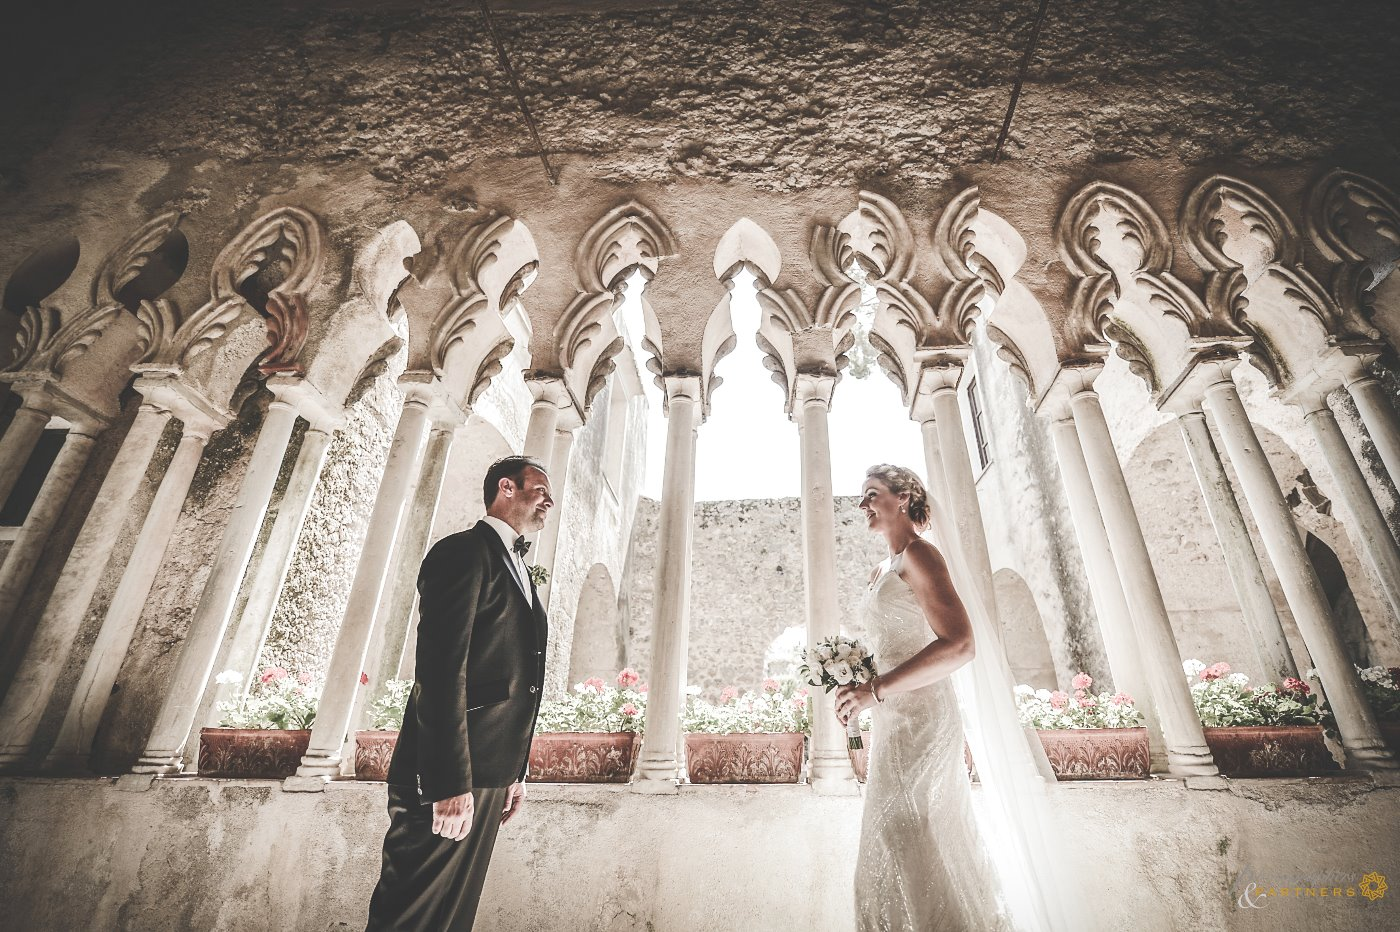 photographer_weddings_ravello_09.jpg